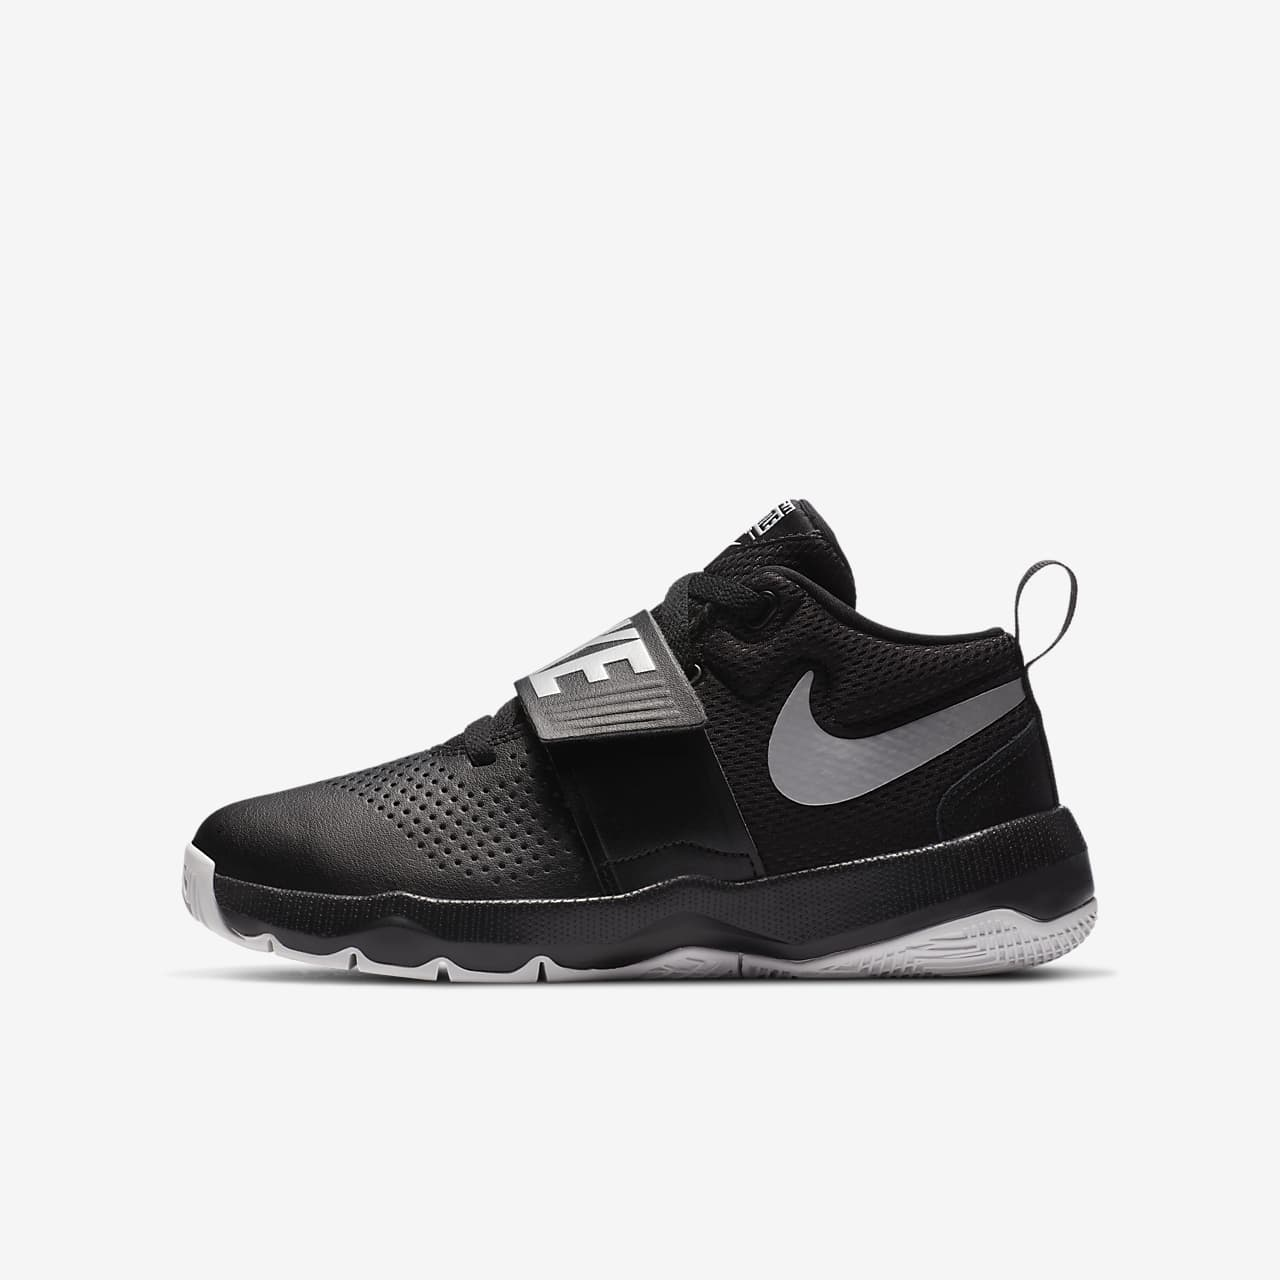 2382f6cca1a Nike Team Hustle D 8 Big Kids  Basketball Shoe. Nike.com